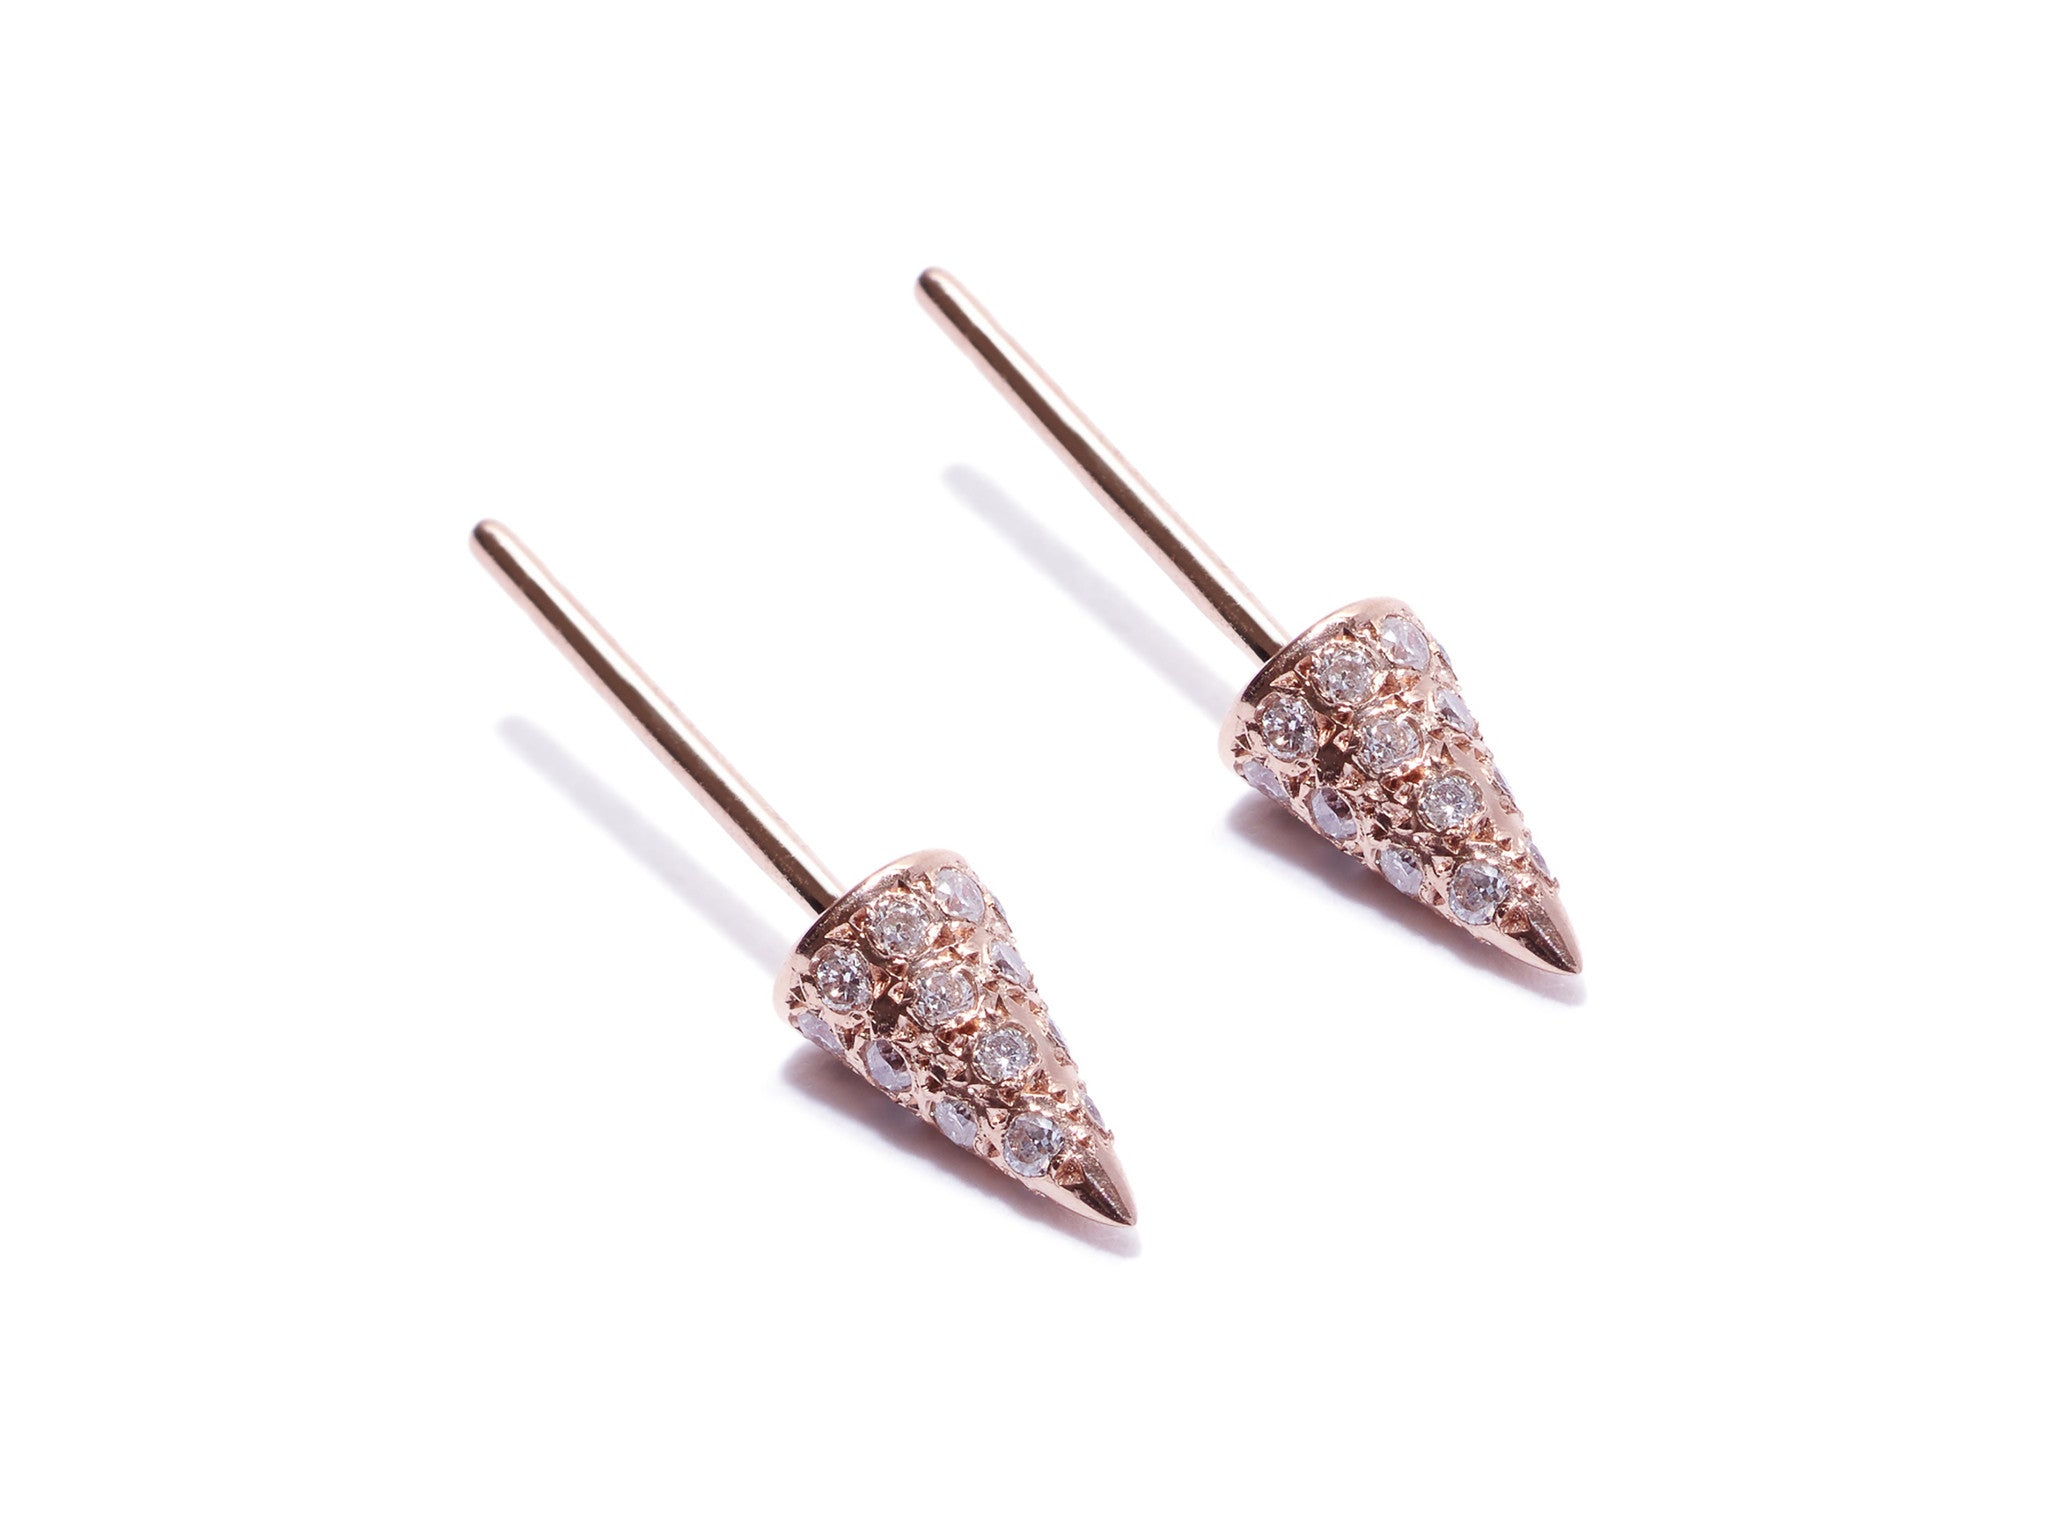 Micro Pave Diamonds Cone Spike Stud Earrings Wendy Nichol Fine Jewelry Designer 14k Gold Yellow Rose White Diamond Black Diamond Simple Delicate Punk Studs Handmade in NYC New York City First Second Third Ear piercing Lower Lobe upper lobe snug Helix Cartilage Tragus studs earrings